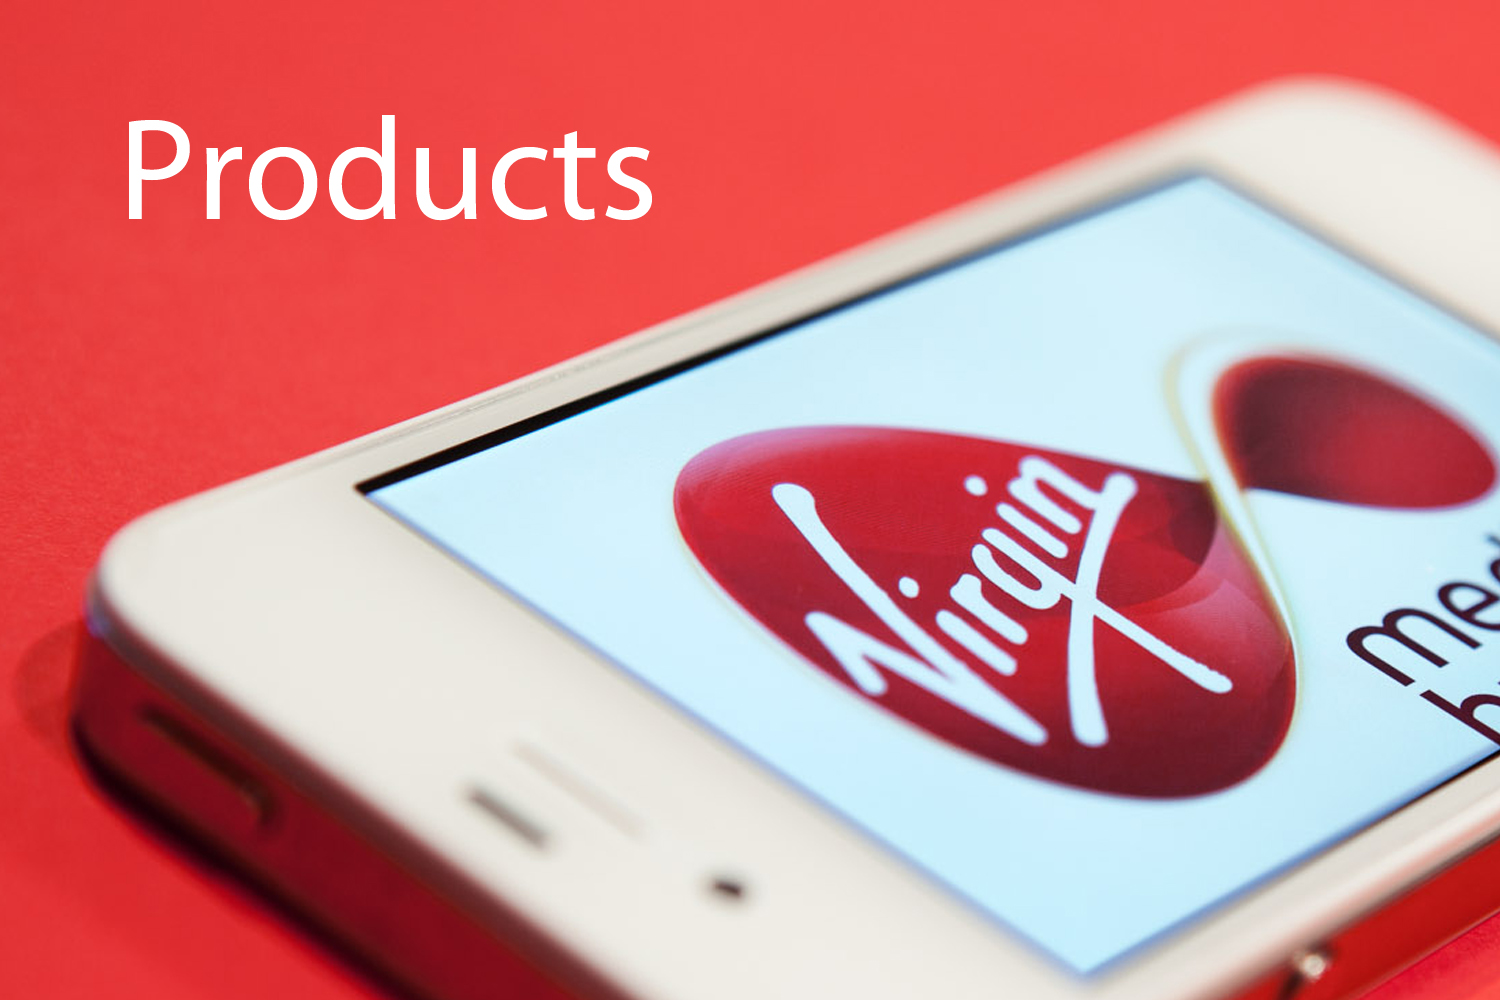 PRODUCT PHOTOGRAPHY GALLERY